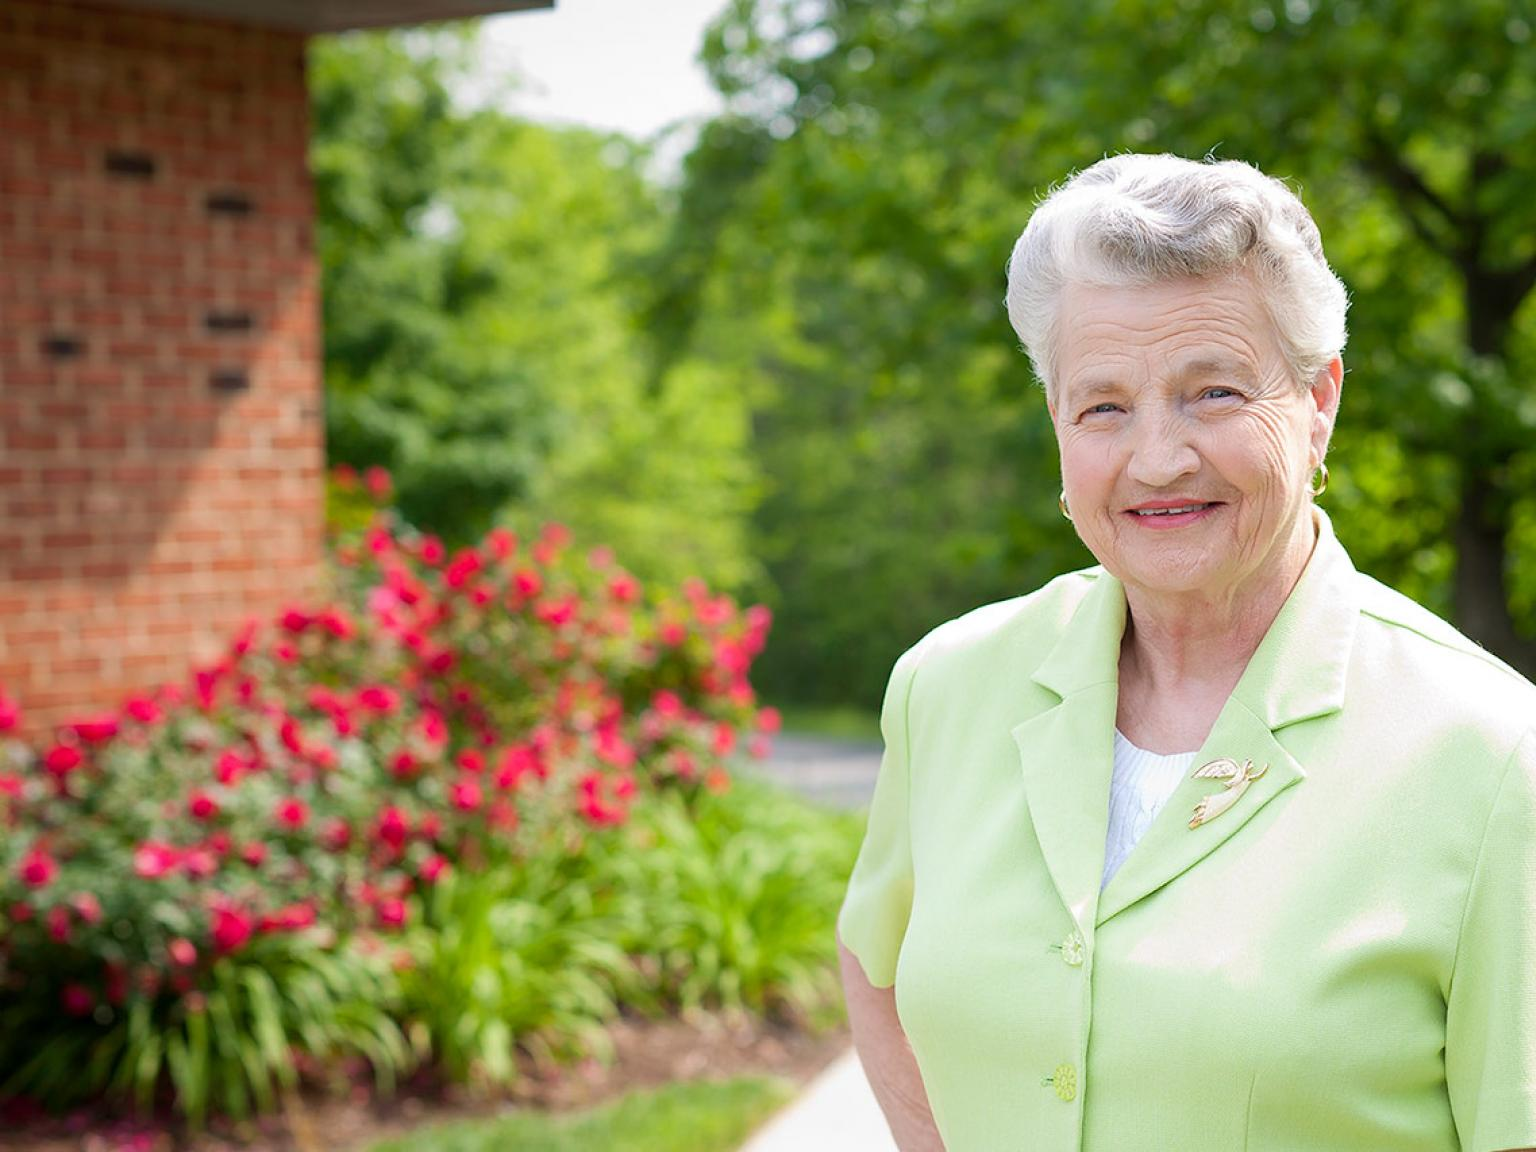 Betty enjoying the grounds outside of Appomattox Health & Rehabilitation Center